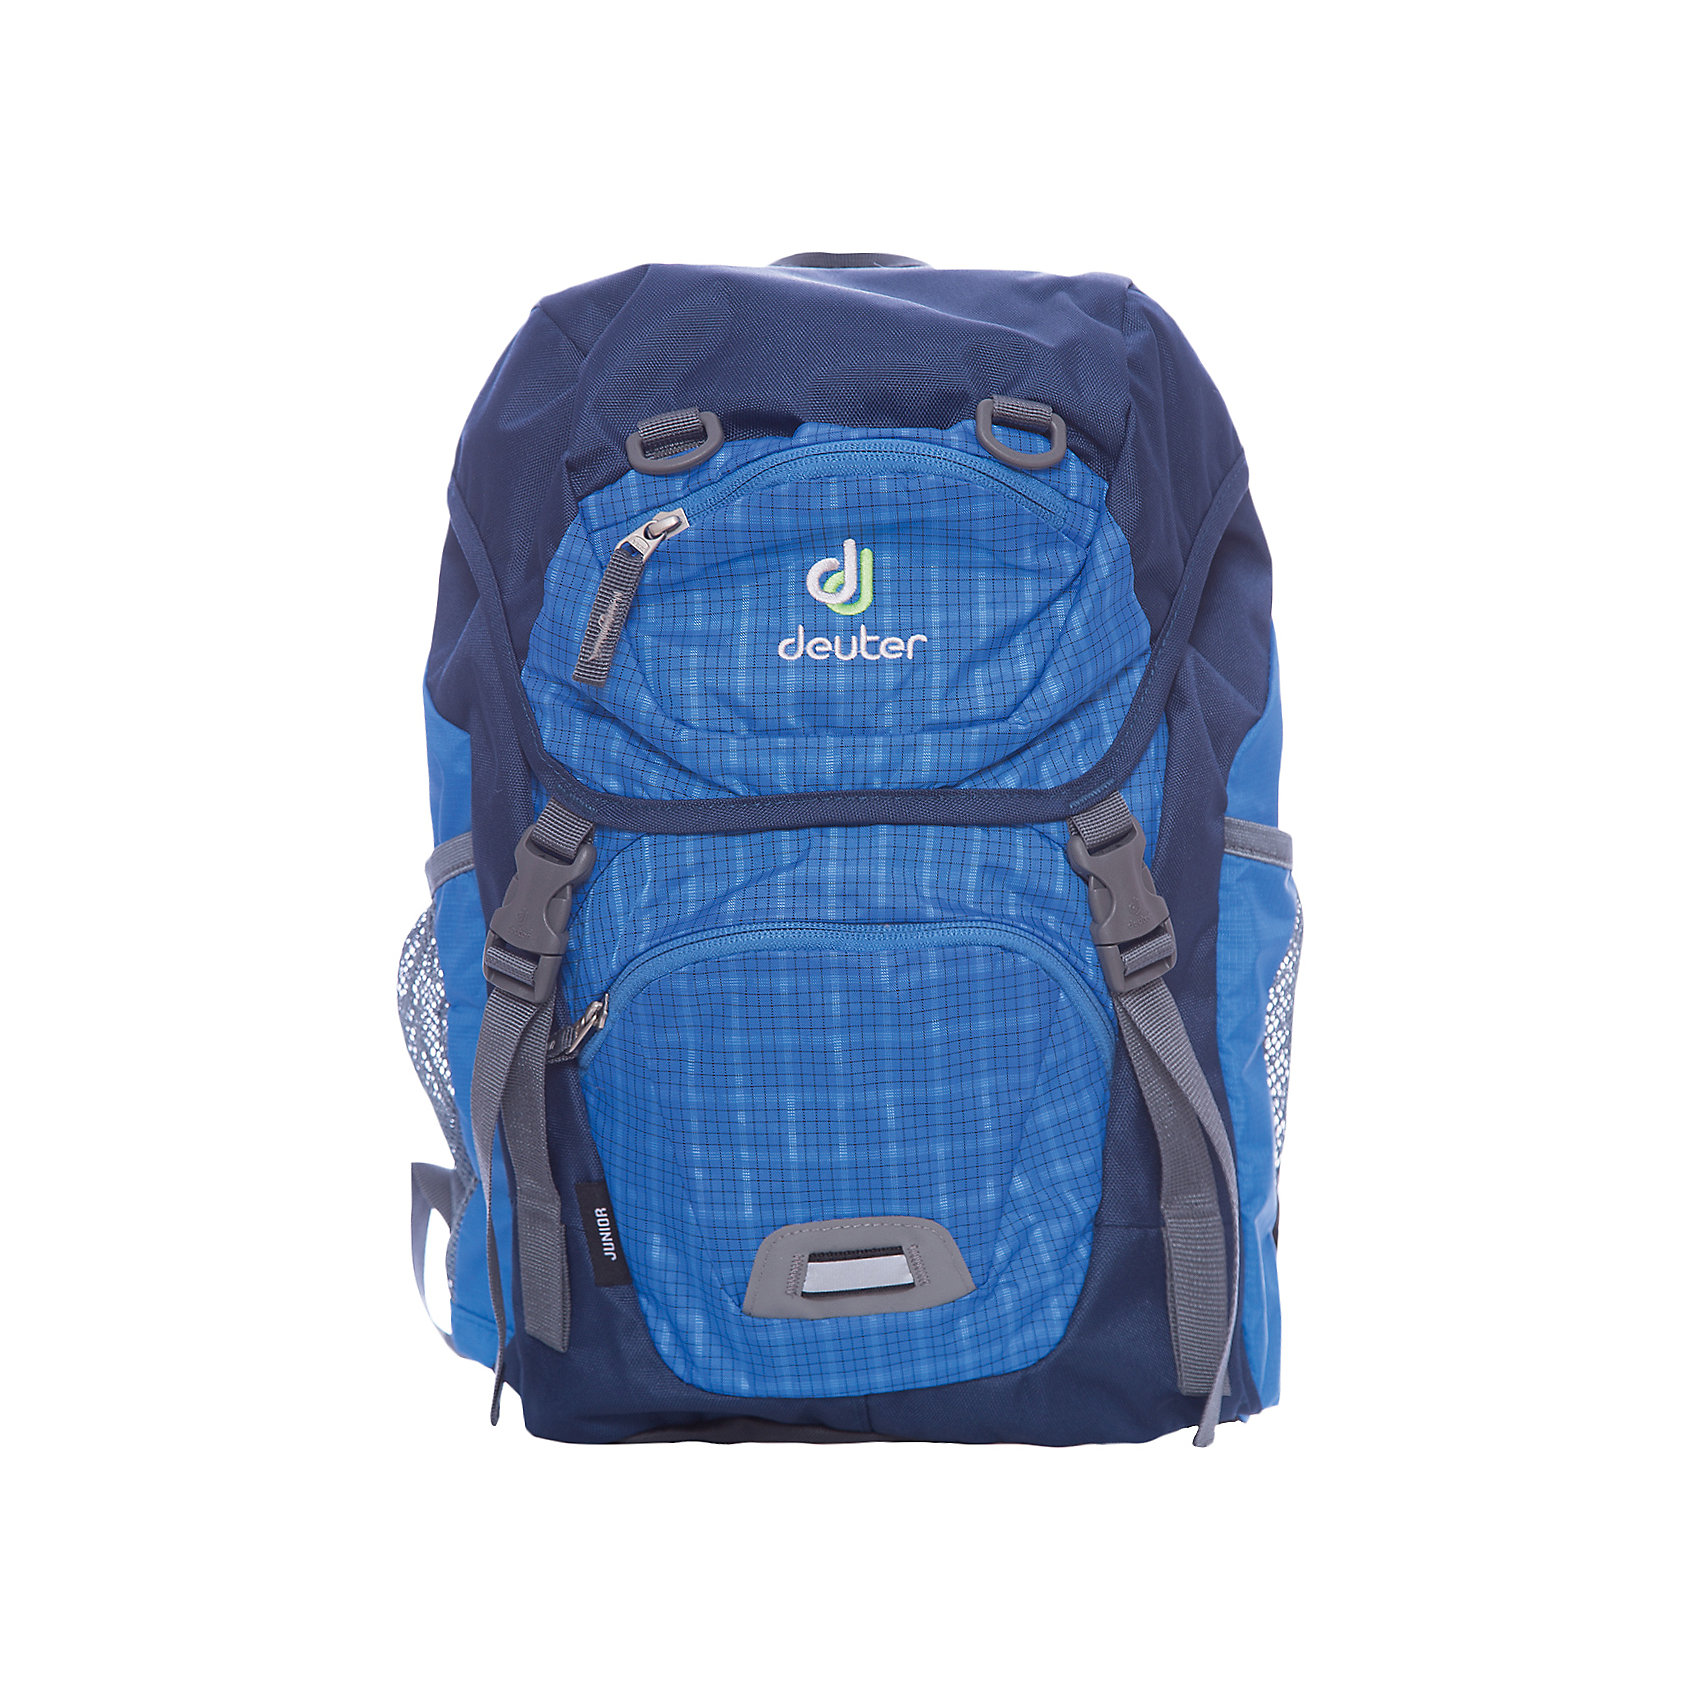 Deuter Рюкзак Junior, голубая клетка deuter giga blackberry dresscode